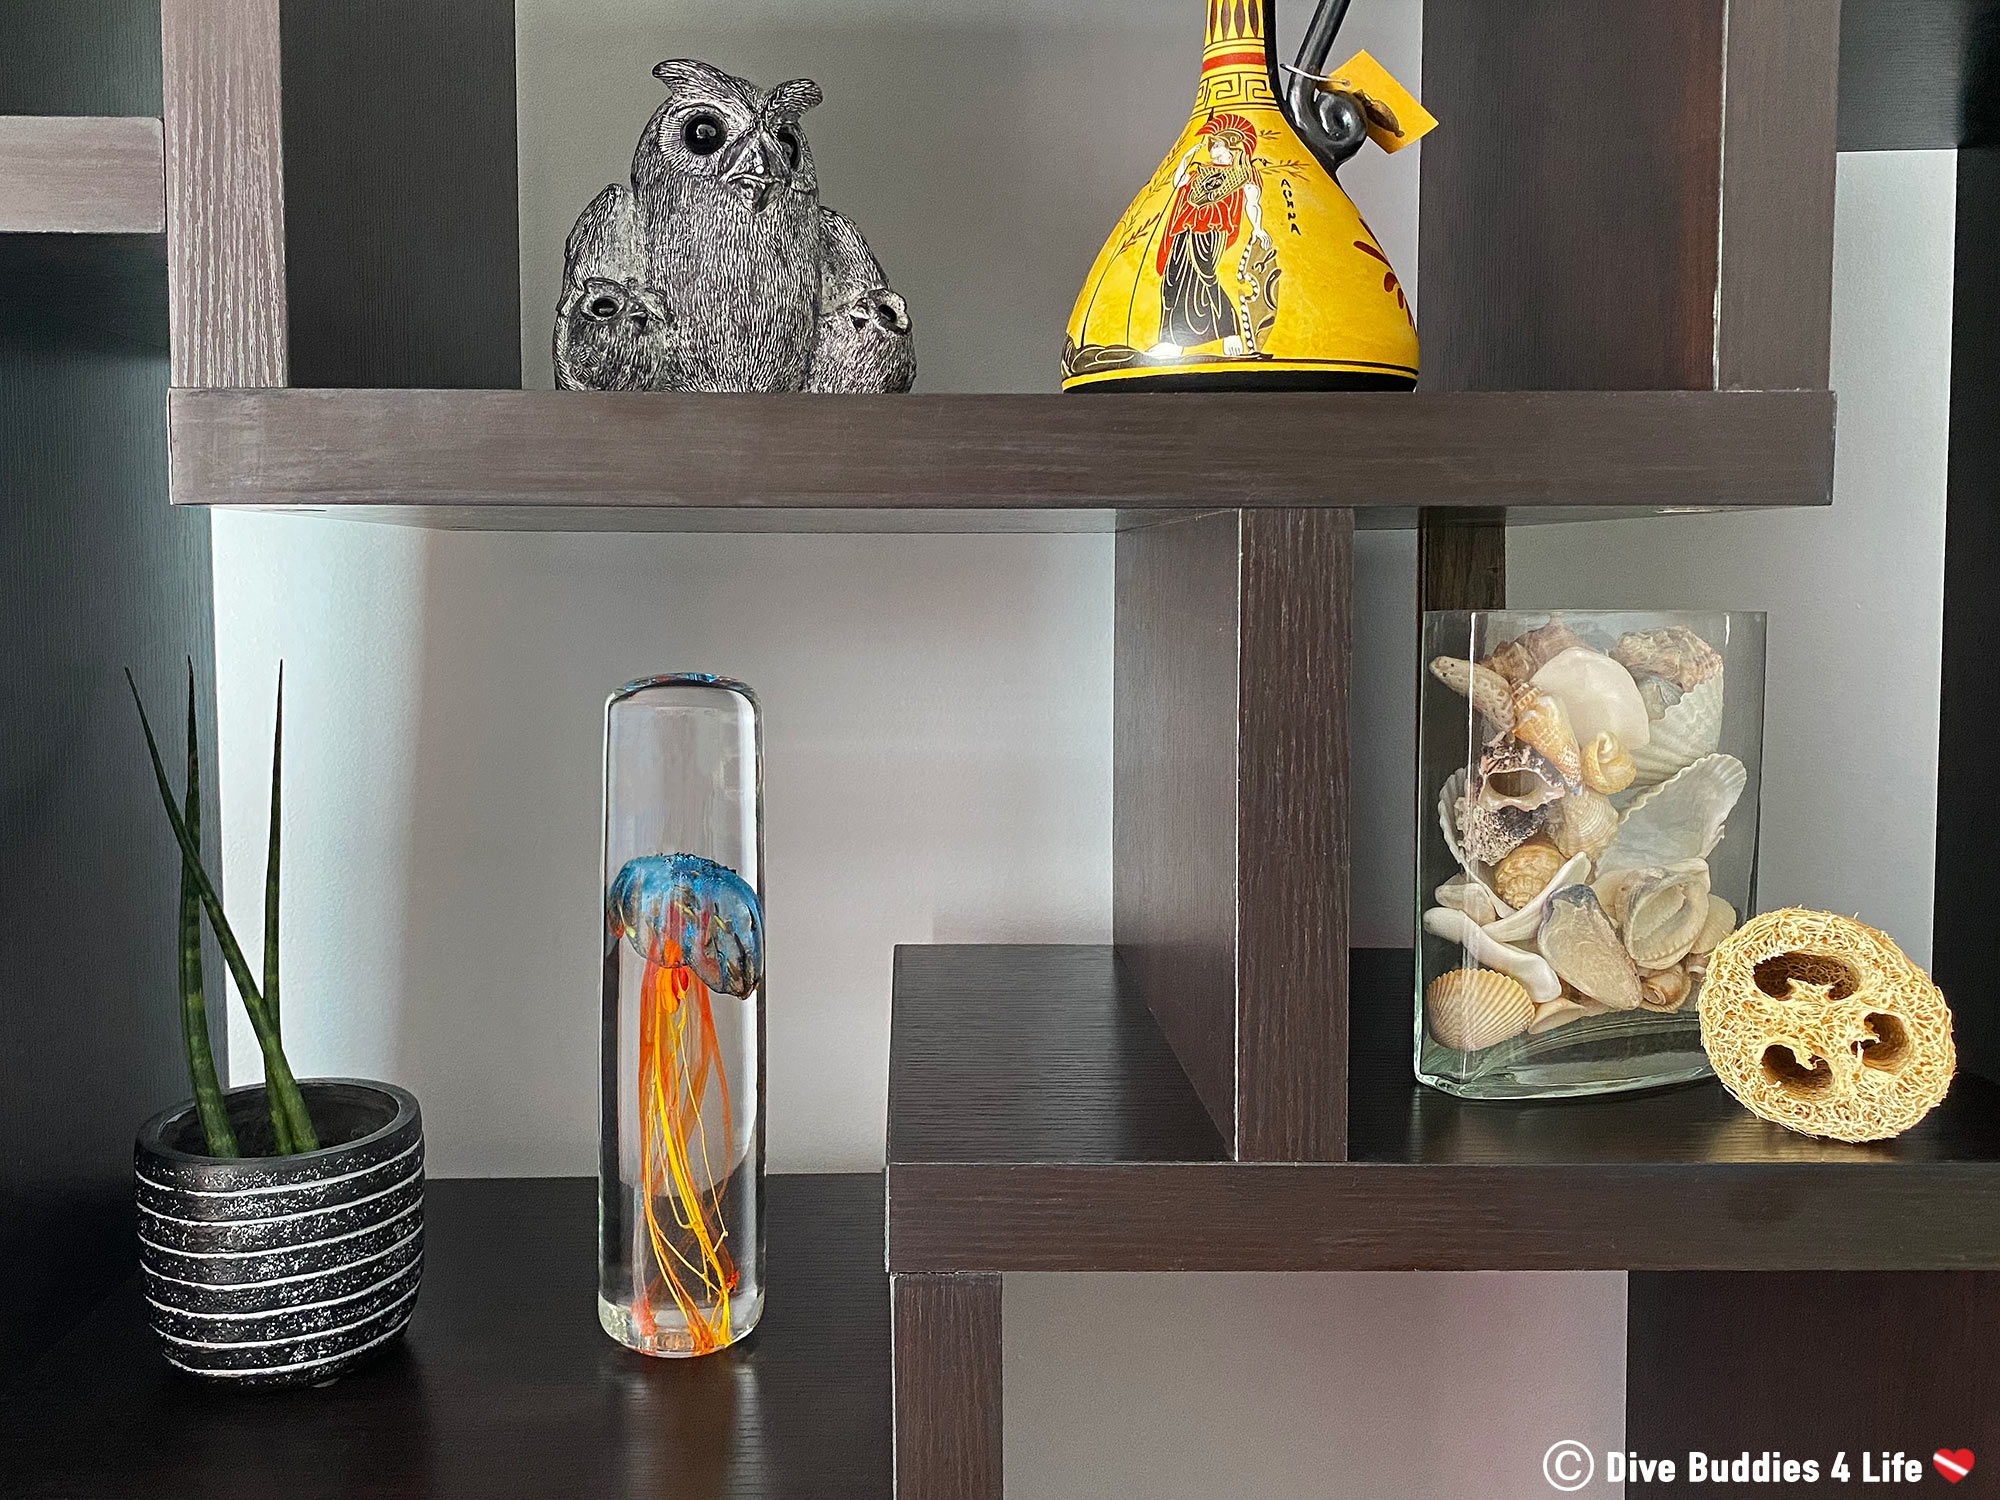 A Shelf With Home Decor Displaying The Glass Jellyfish Statue